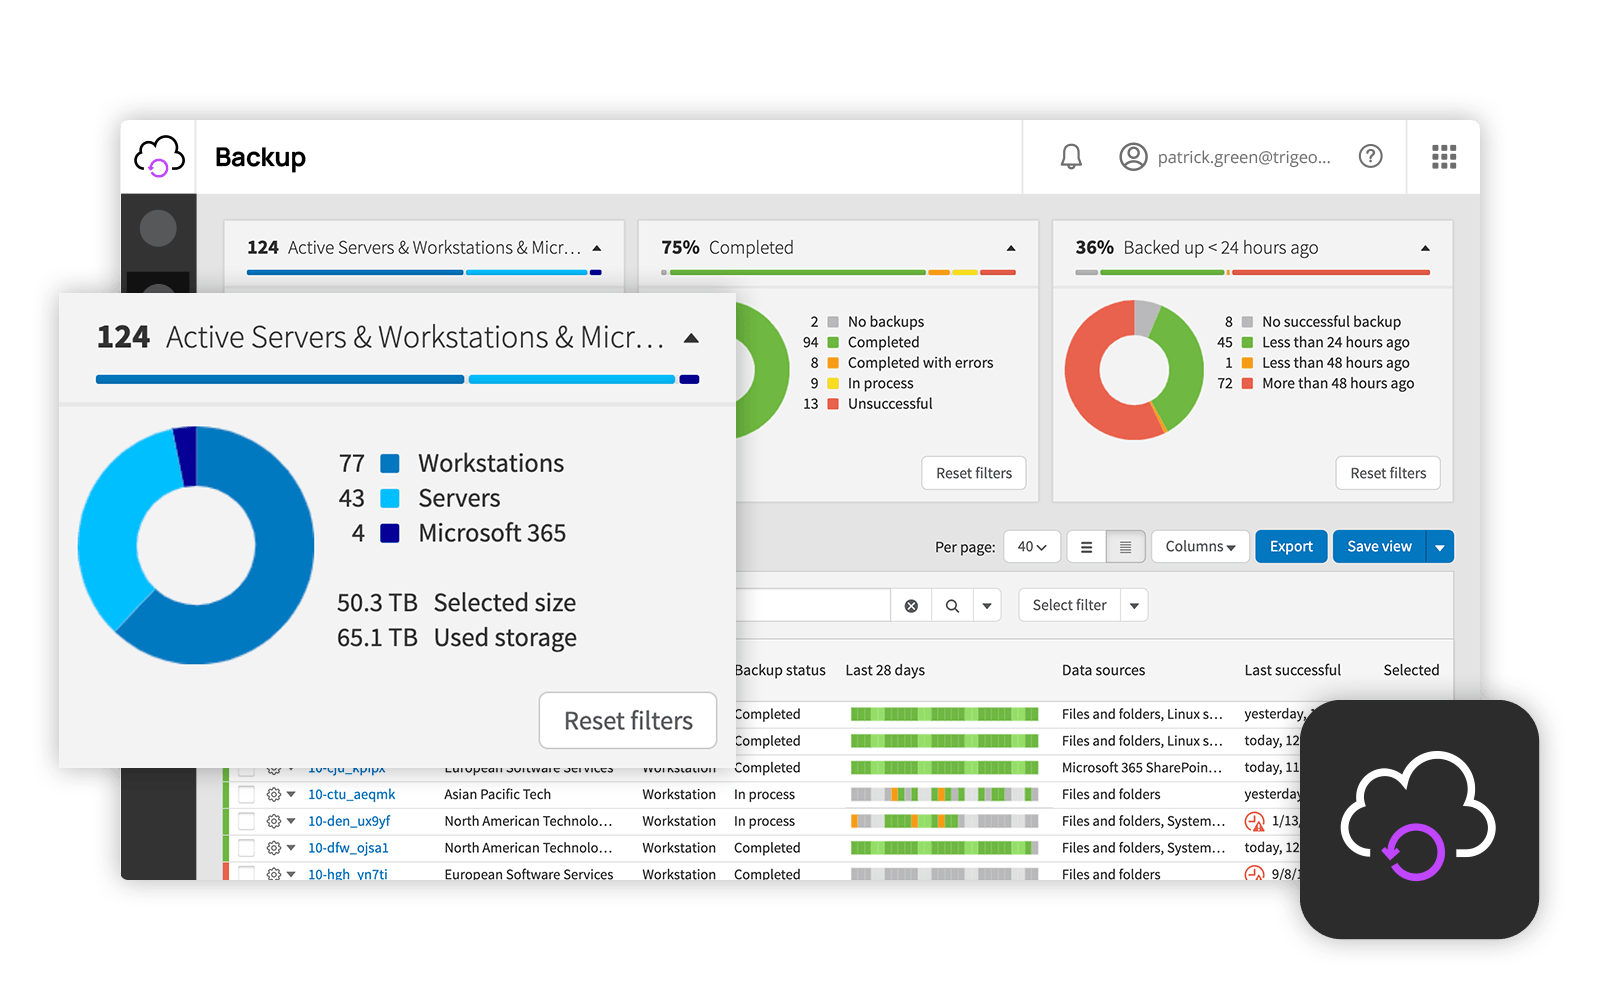 Backup screenshot: The backup & disaster recovery console gives an overview of all crucial components of the layered security strategy